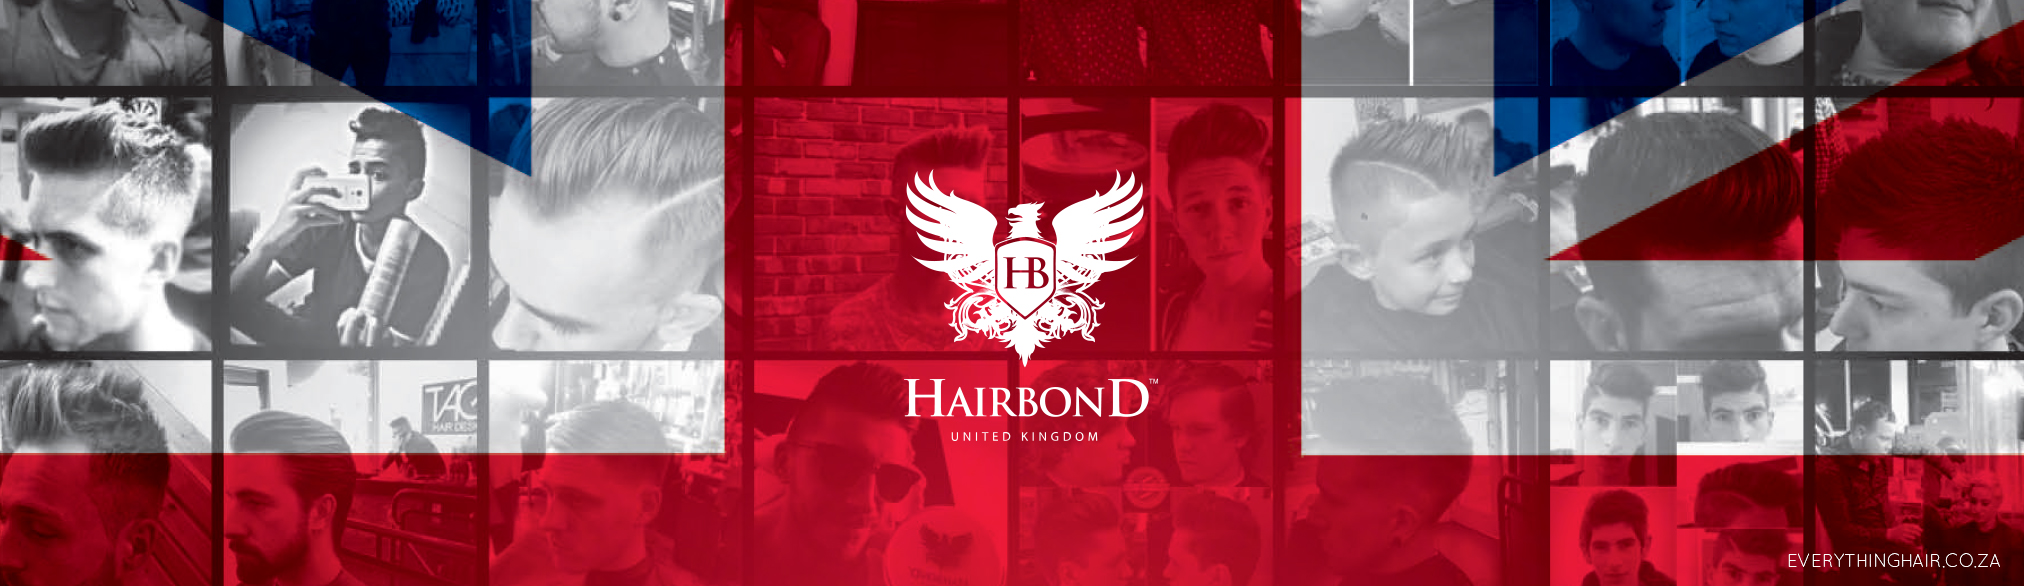 Hairbond Dimensions